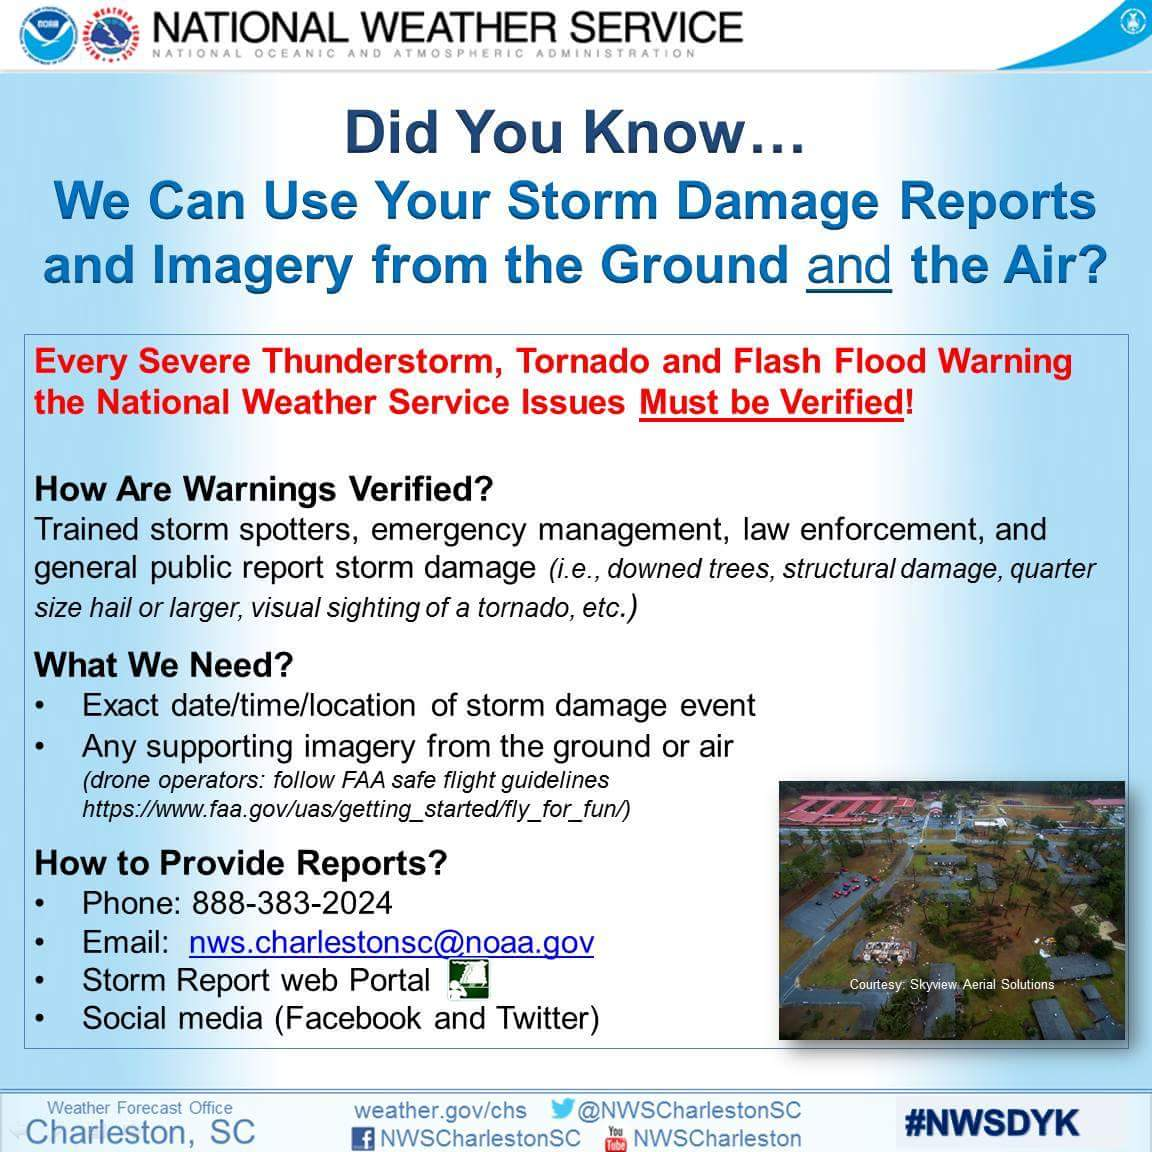 National Weather Service Storm Reports